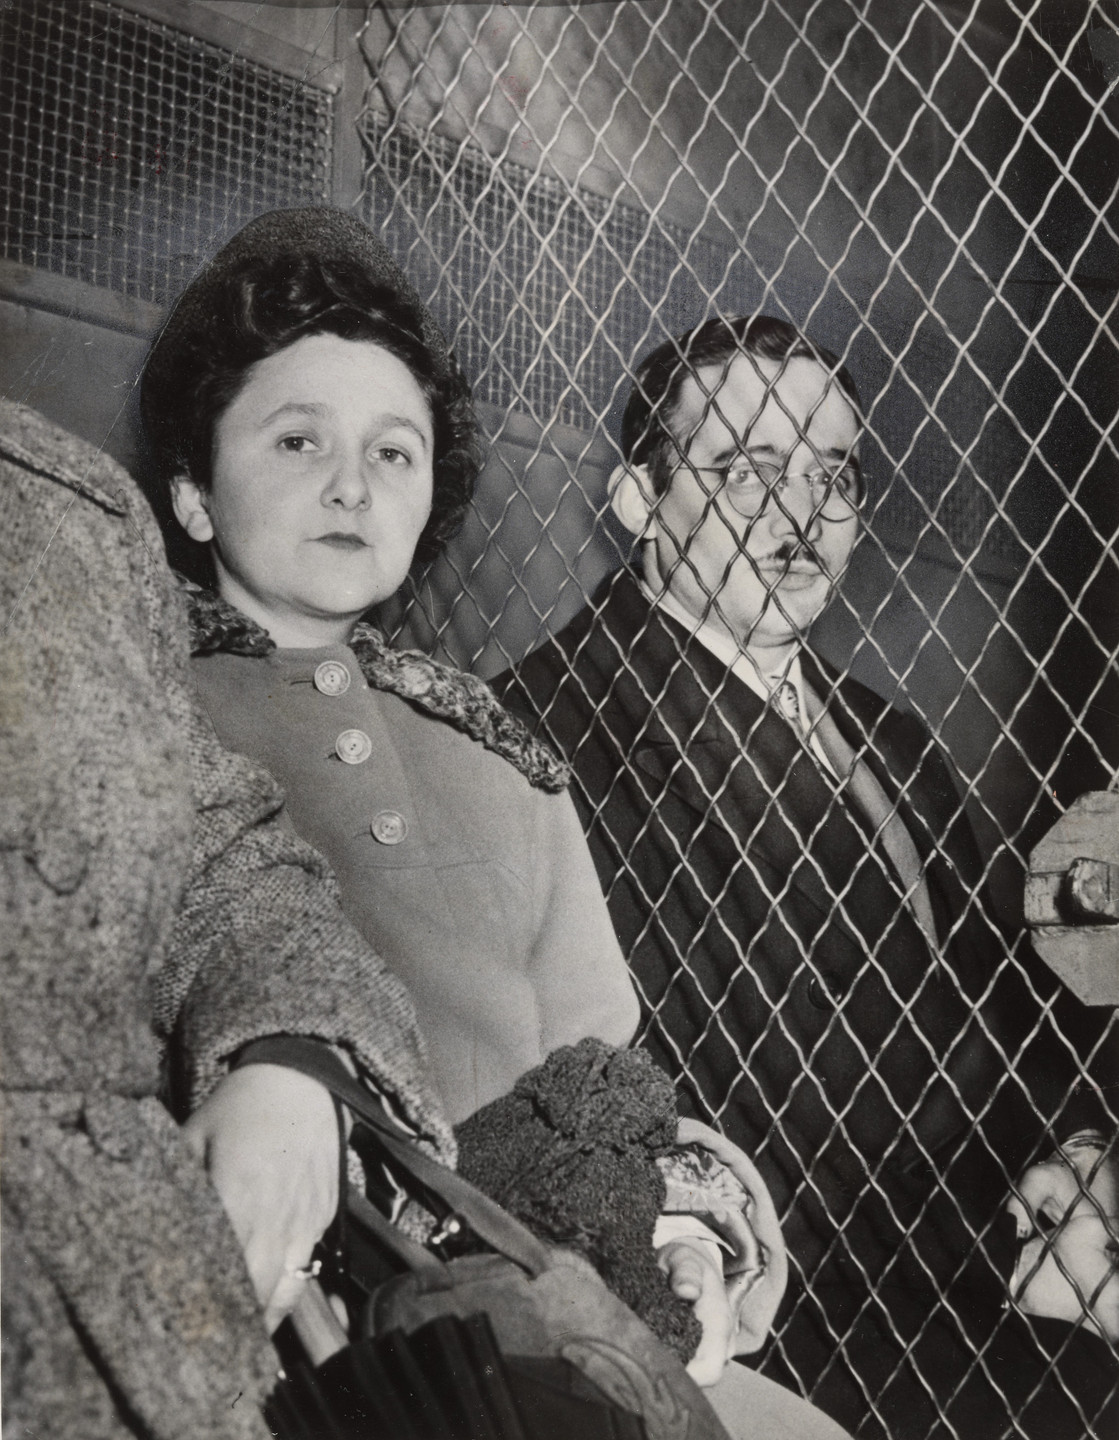 Associated Press, Roger Higgins. Ethel and Julius Rosenberg on Their Way to Jail in New York. March 29, 1951